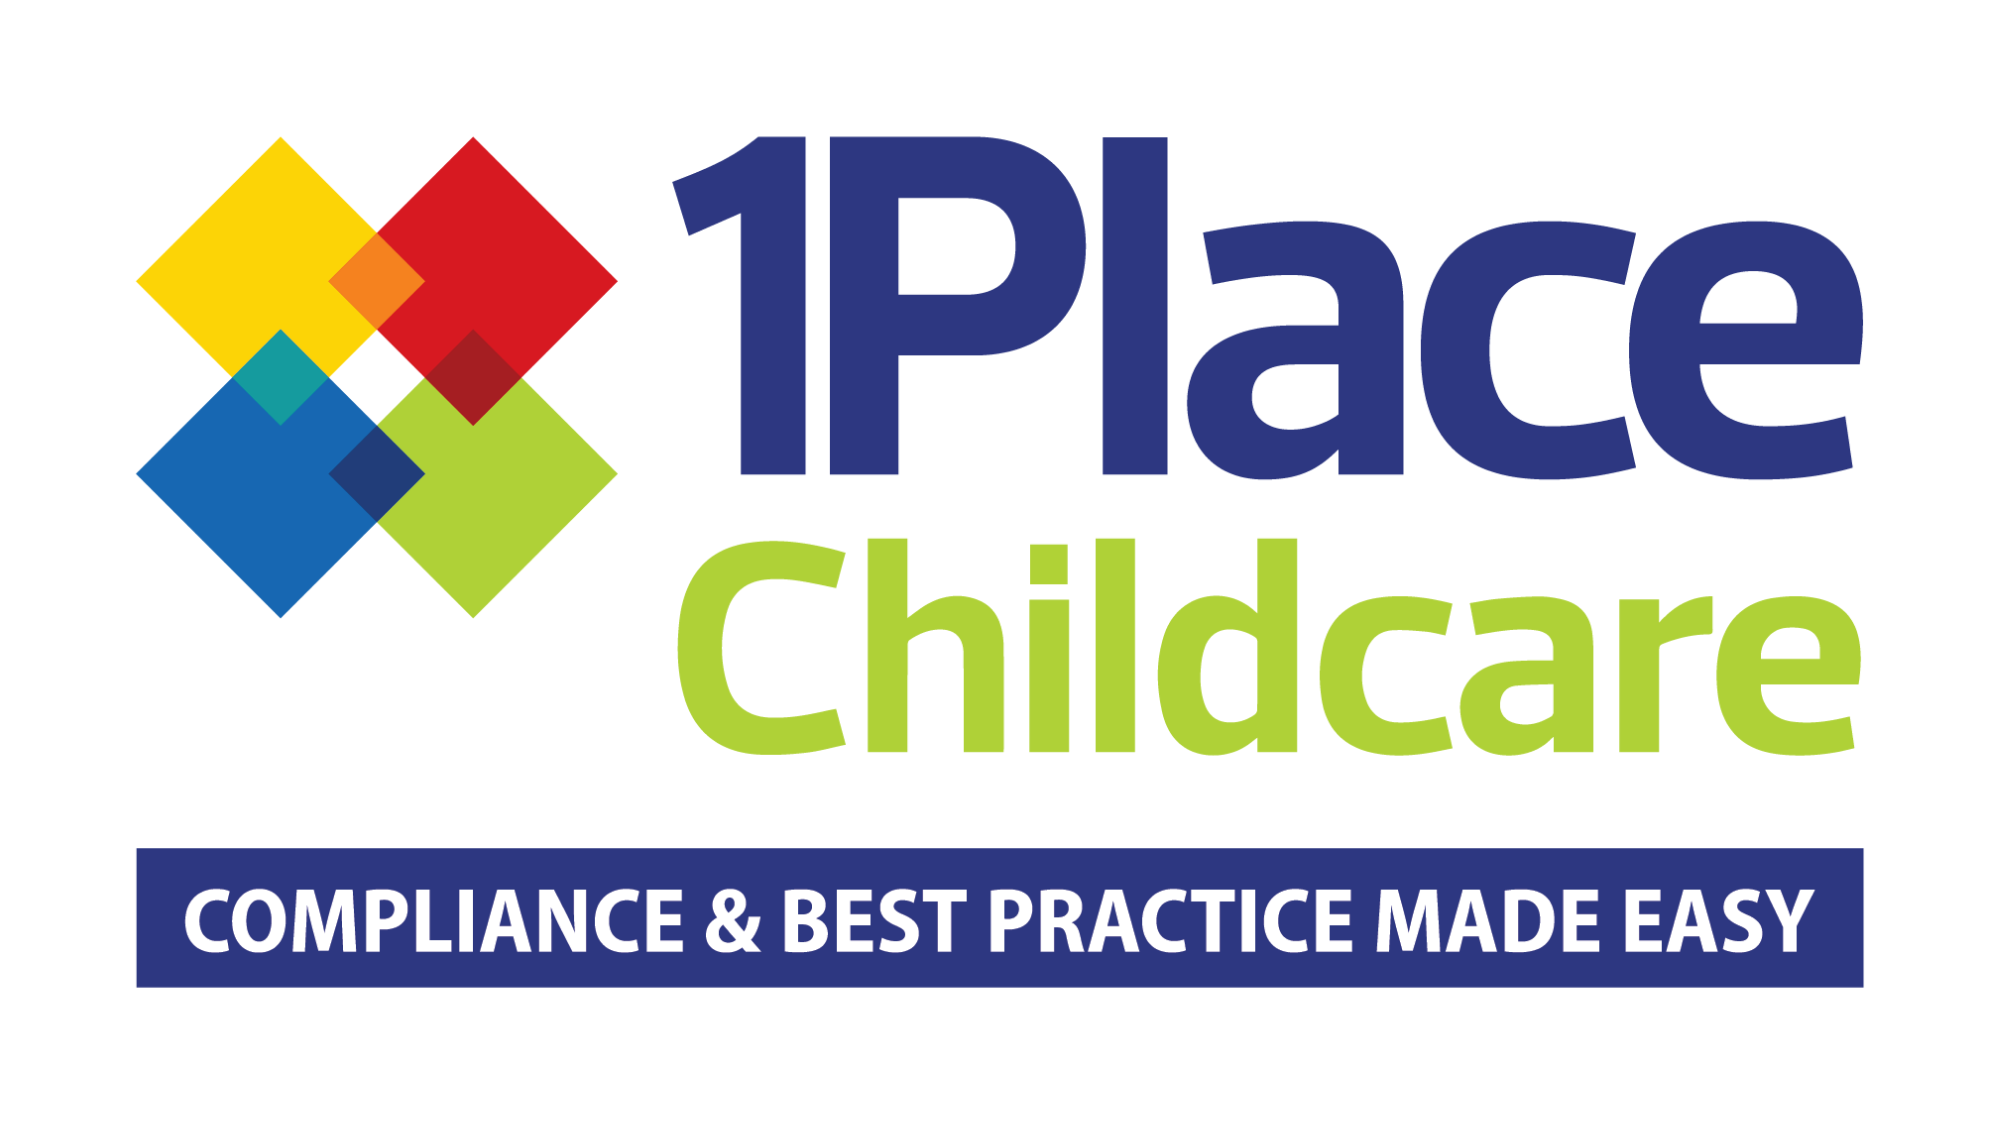 1 Place Childcare logo